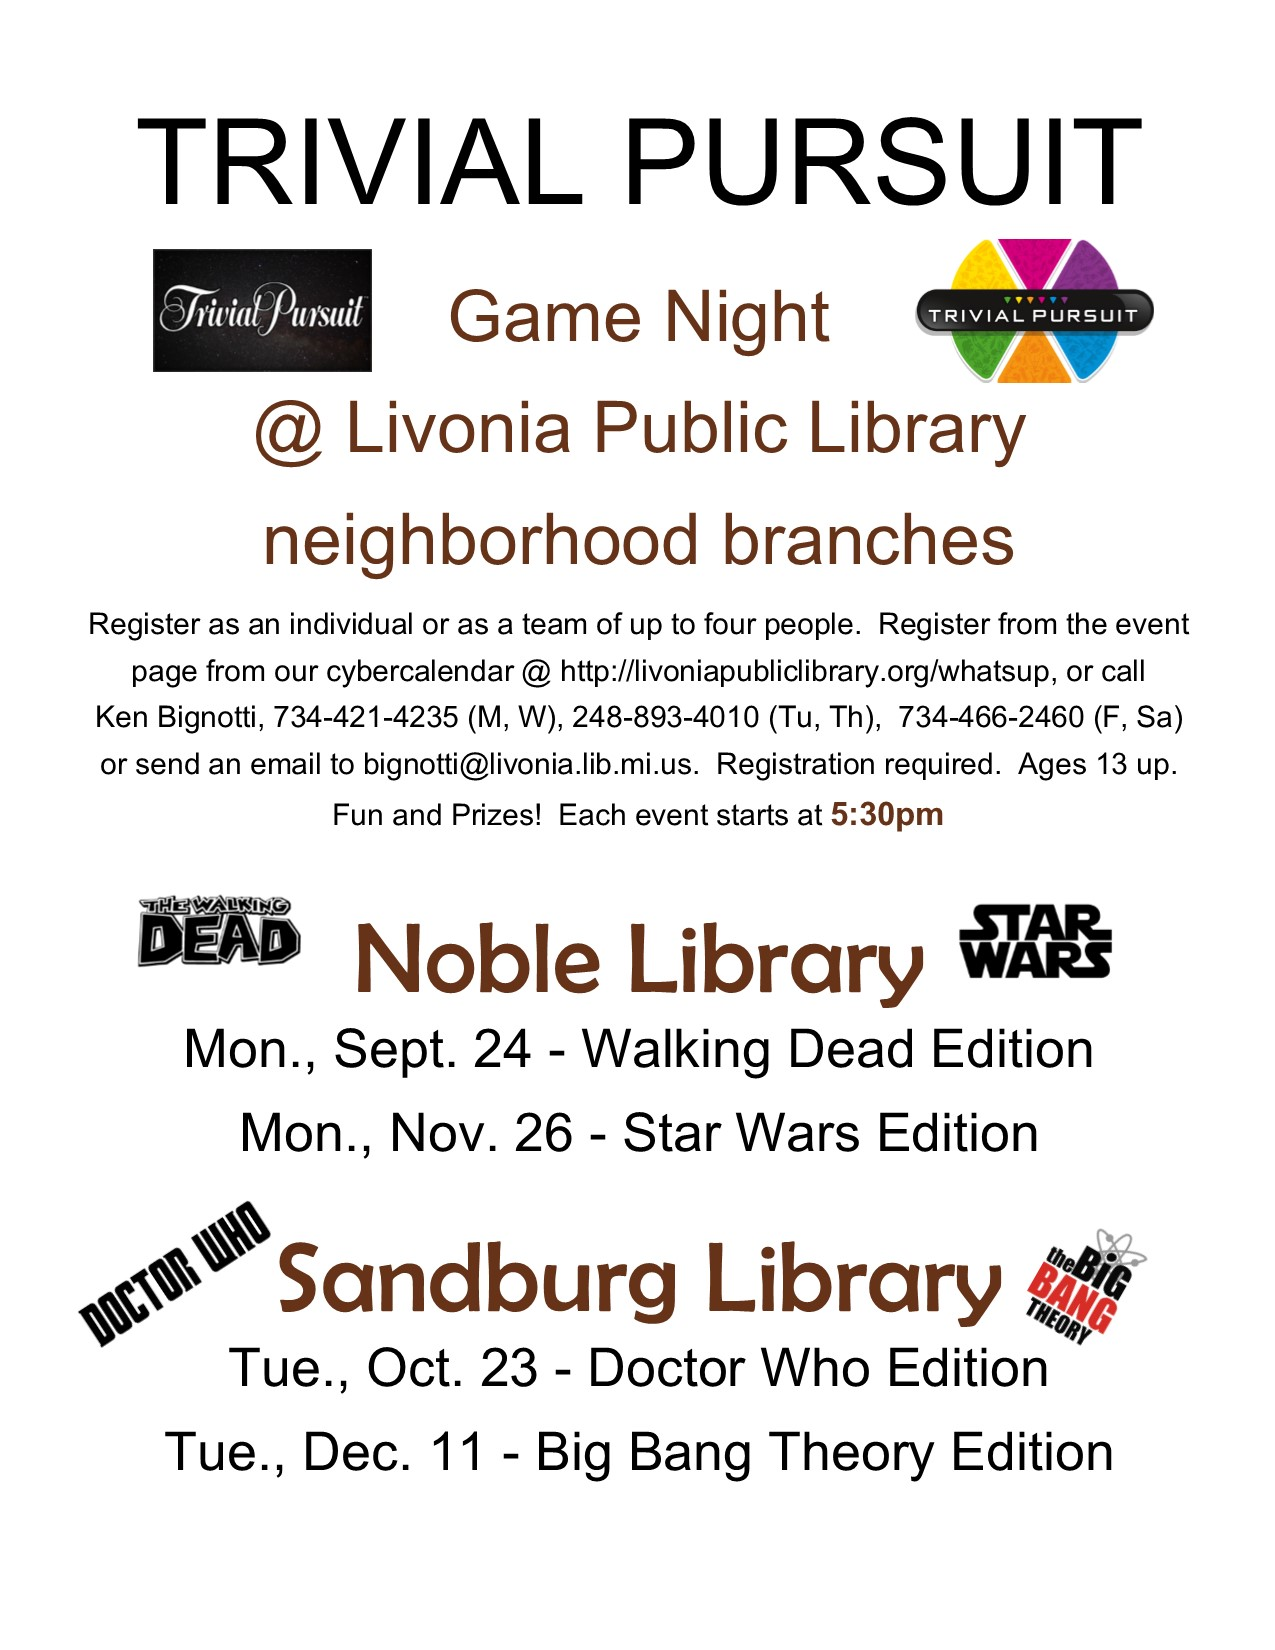 Trivial Pursuit Night at Livonia Neighborhood branches, Doctor Who Edition